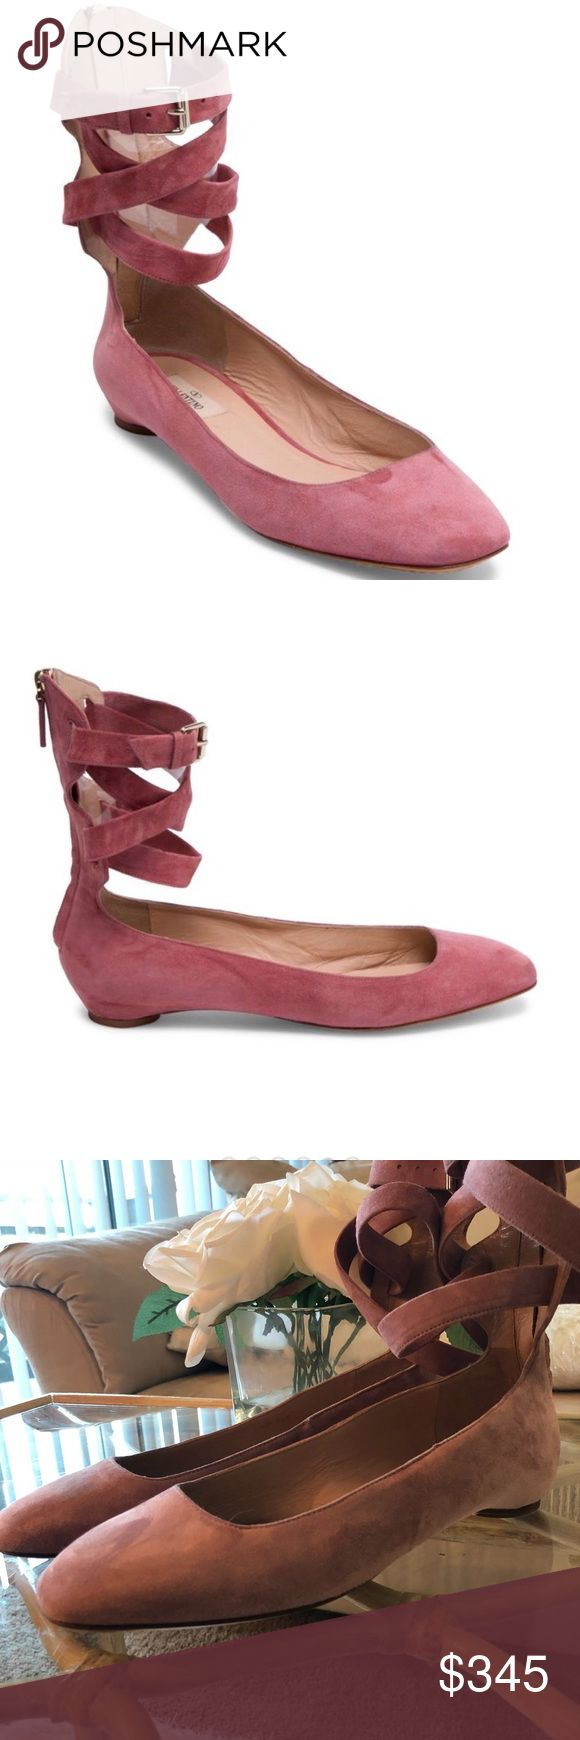 VALENTINO BALLET FLAT. GORGEOUS pink suede square toe ballet flats in suede. Tonal stitching, stacked heel, zip closure in back and adjustable ankle strap. Leather footbed and sole. Made in Italy. 100% AUTHENTIC!! Runs about a 1/2 size small. Valentino Shoes Flats & Loafers